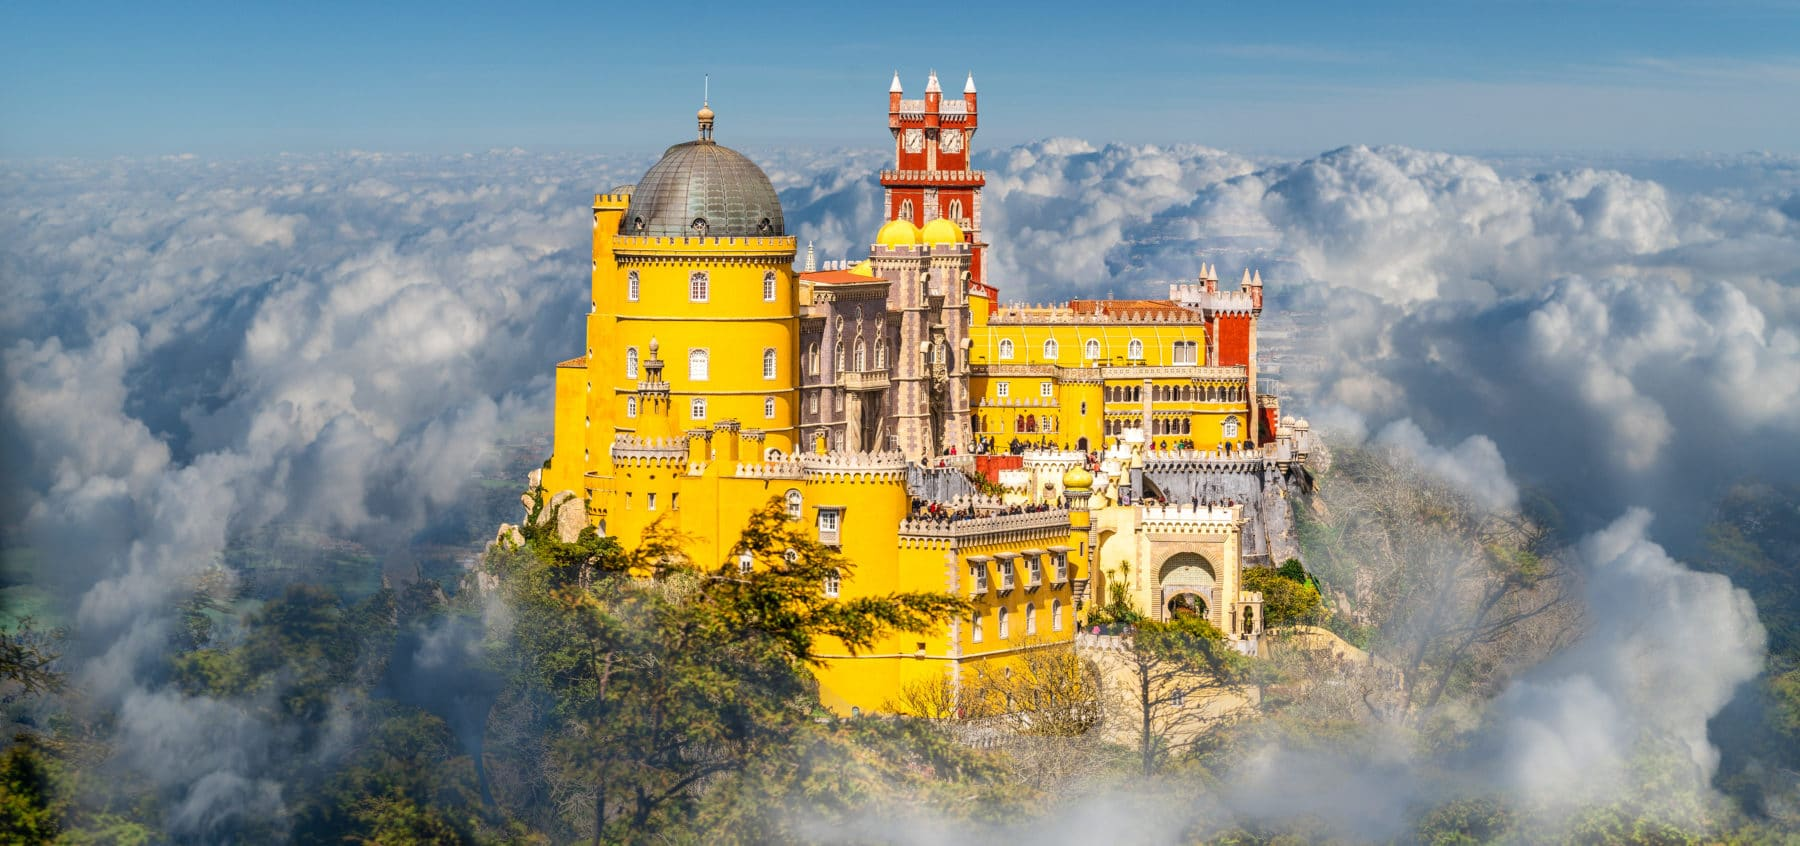 Sintra Romance and Mistery